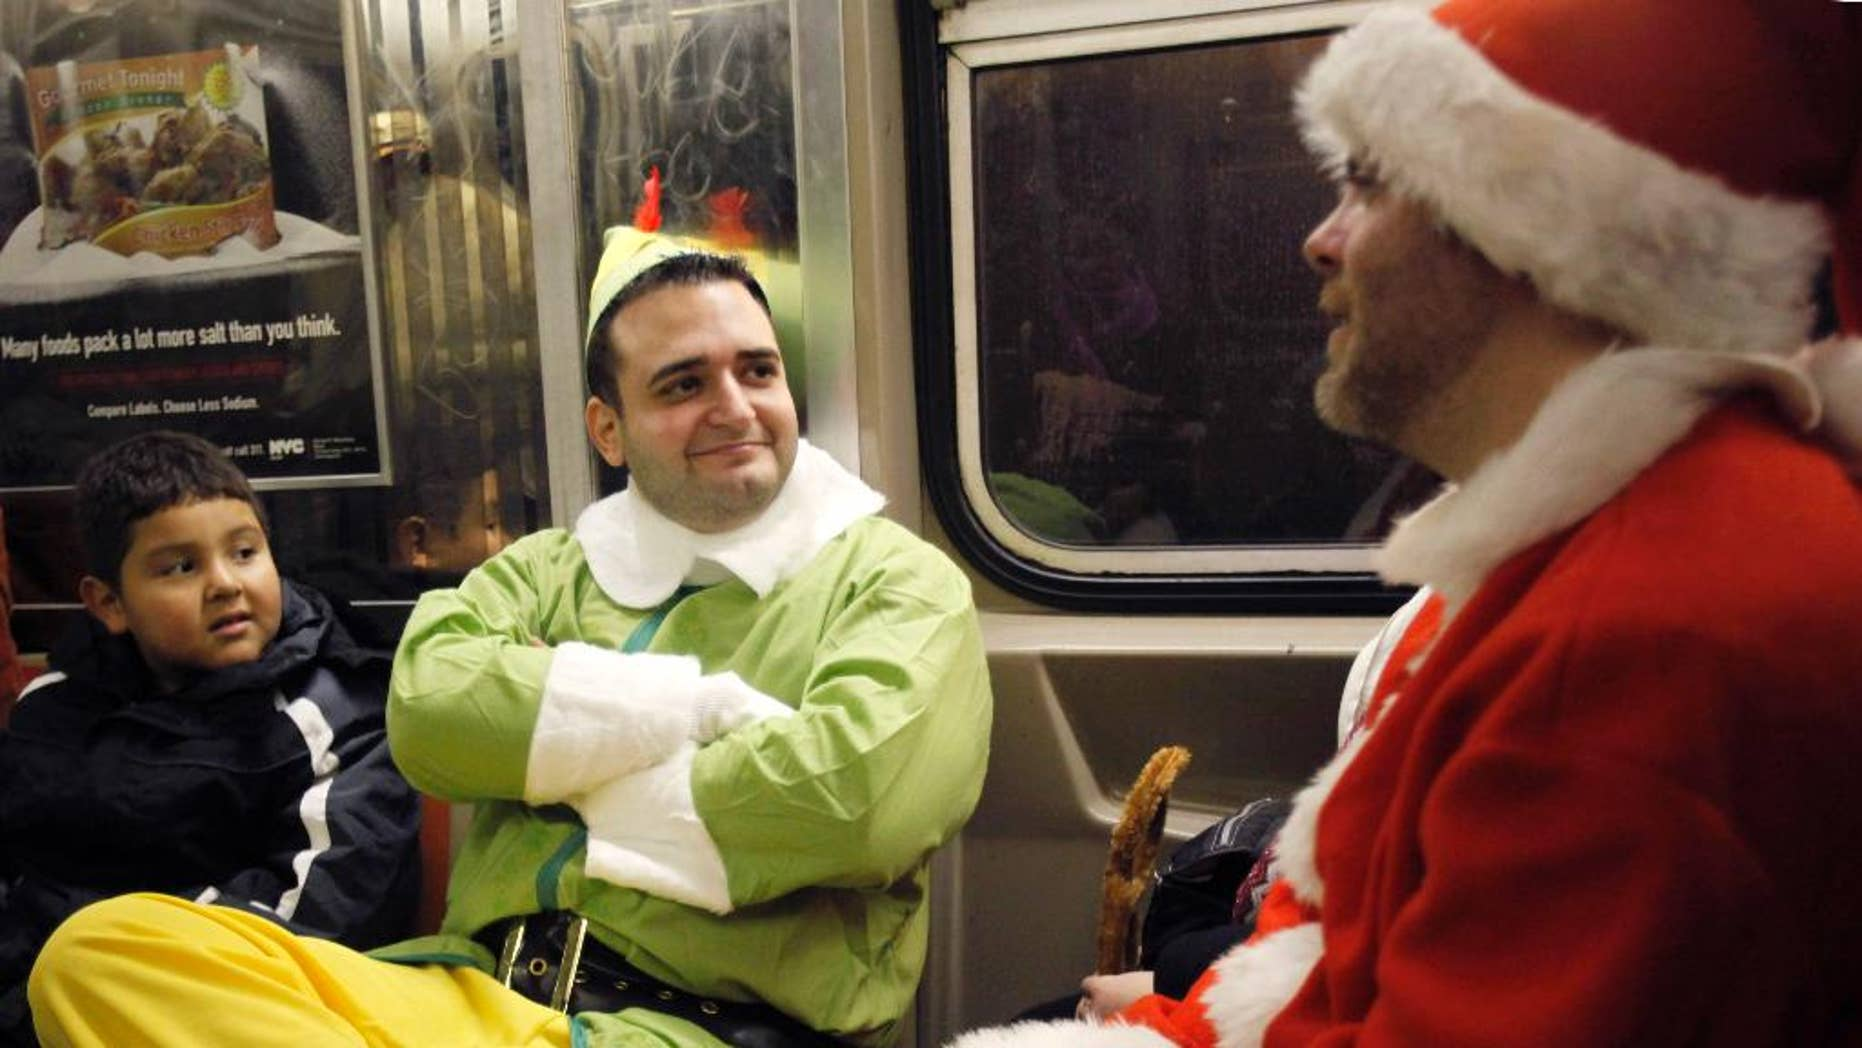 FILE - In this Dec. 11, 2010, file photo, John Paul, center, dressed as an Elf and Michael Smallwood, in a Santa Claus outfit, ride the E train in New York. Paul and Smallwood were participants in SantaCon, an annual holiday pub crawl during which participants dress up as Santa Claus or wear Christmas-themed clothing. As thousands of Santa-suited merrymakers prepare to hit the city's streets and bars Saturday, Dec. 12, 2015, organizers say they're taking steps to deter naughty behavior. (AP Photo/Mary Altaffer, File)